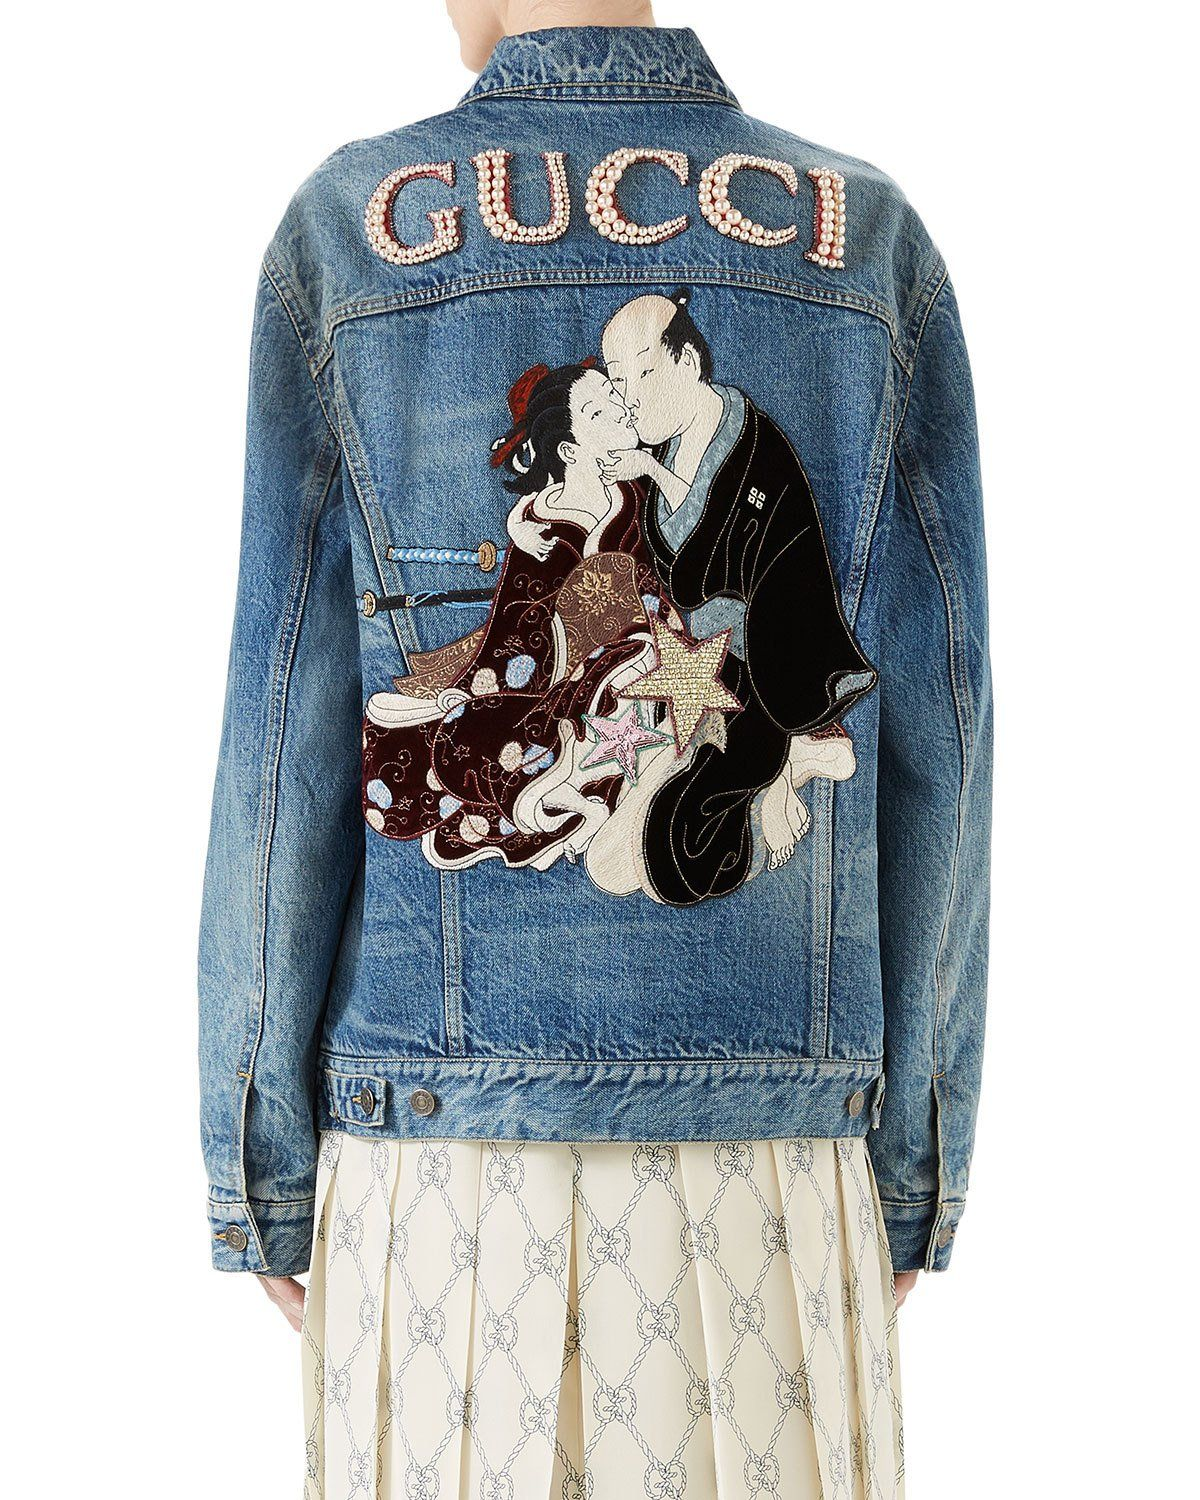 5d04c5d37 Gucci Denim Jacket with Applique | Products in 2019 | Gucci denim ...